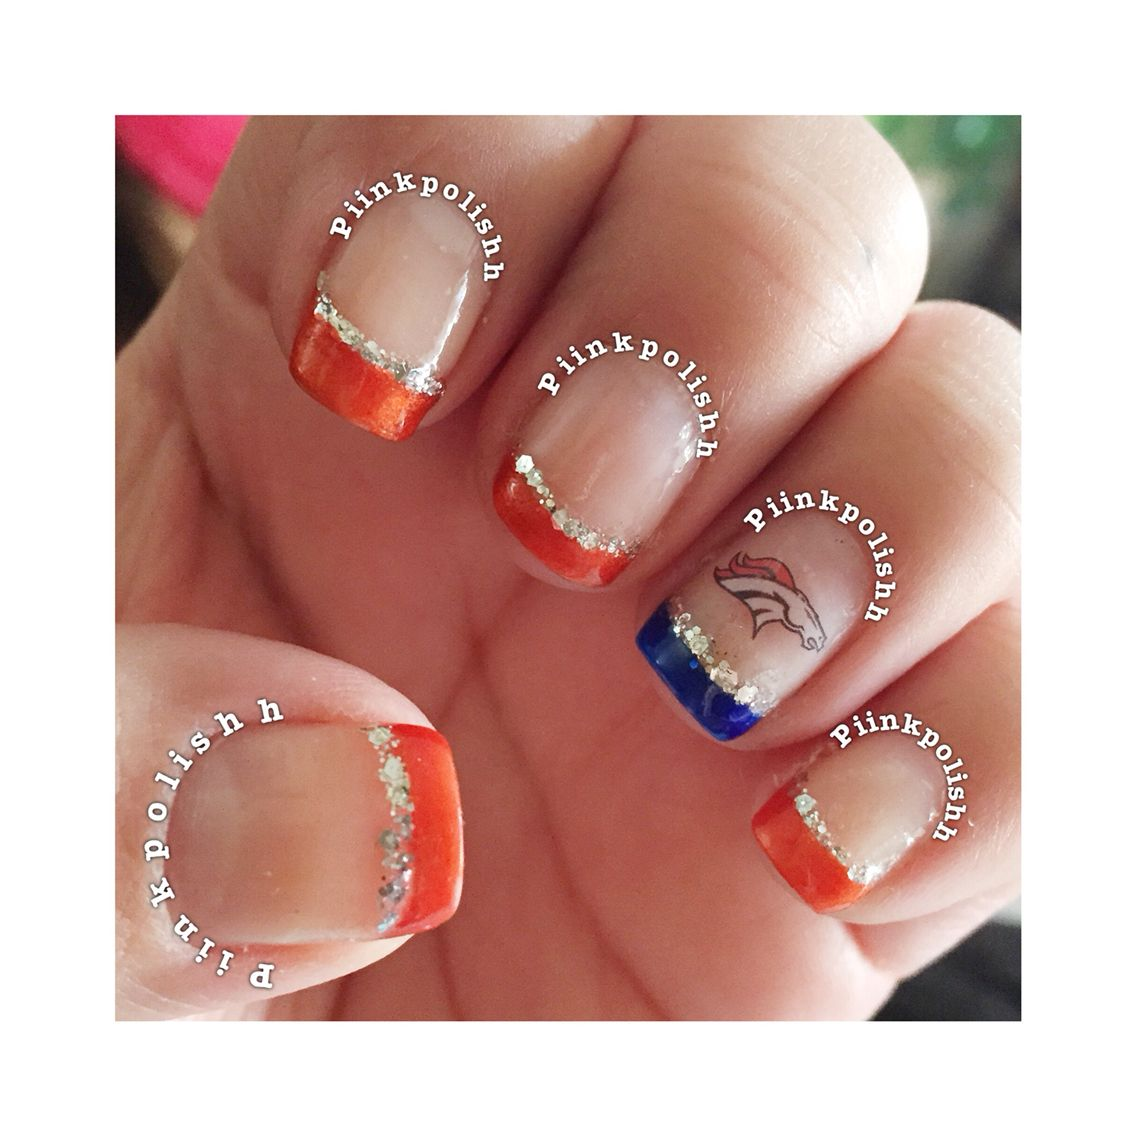 Denver Broncos nails. | My nail Designs | Pinterest | Denver broncos ...